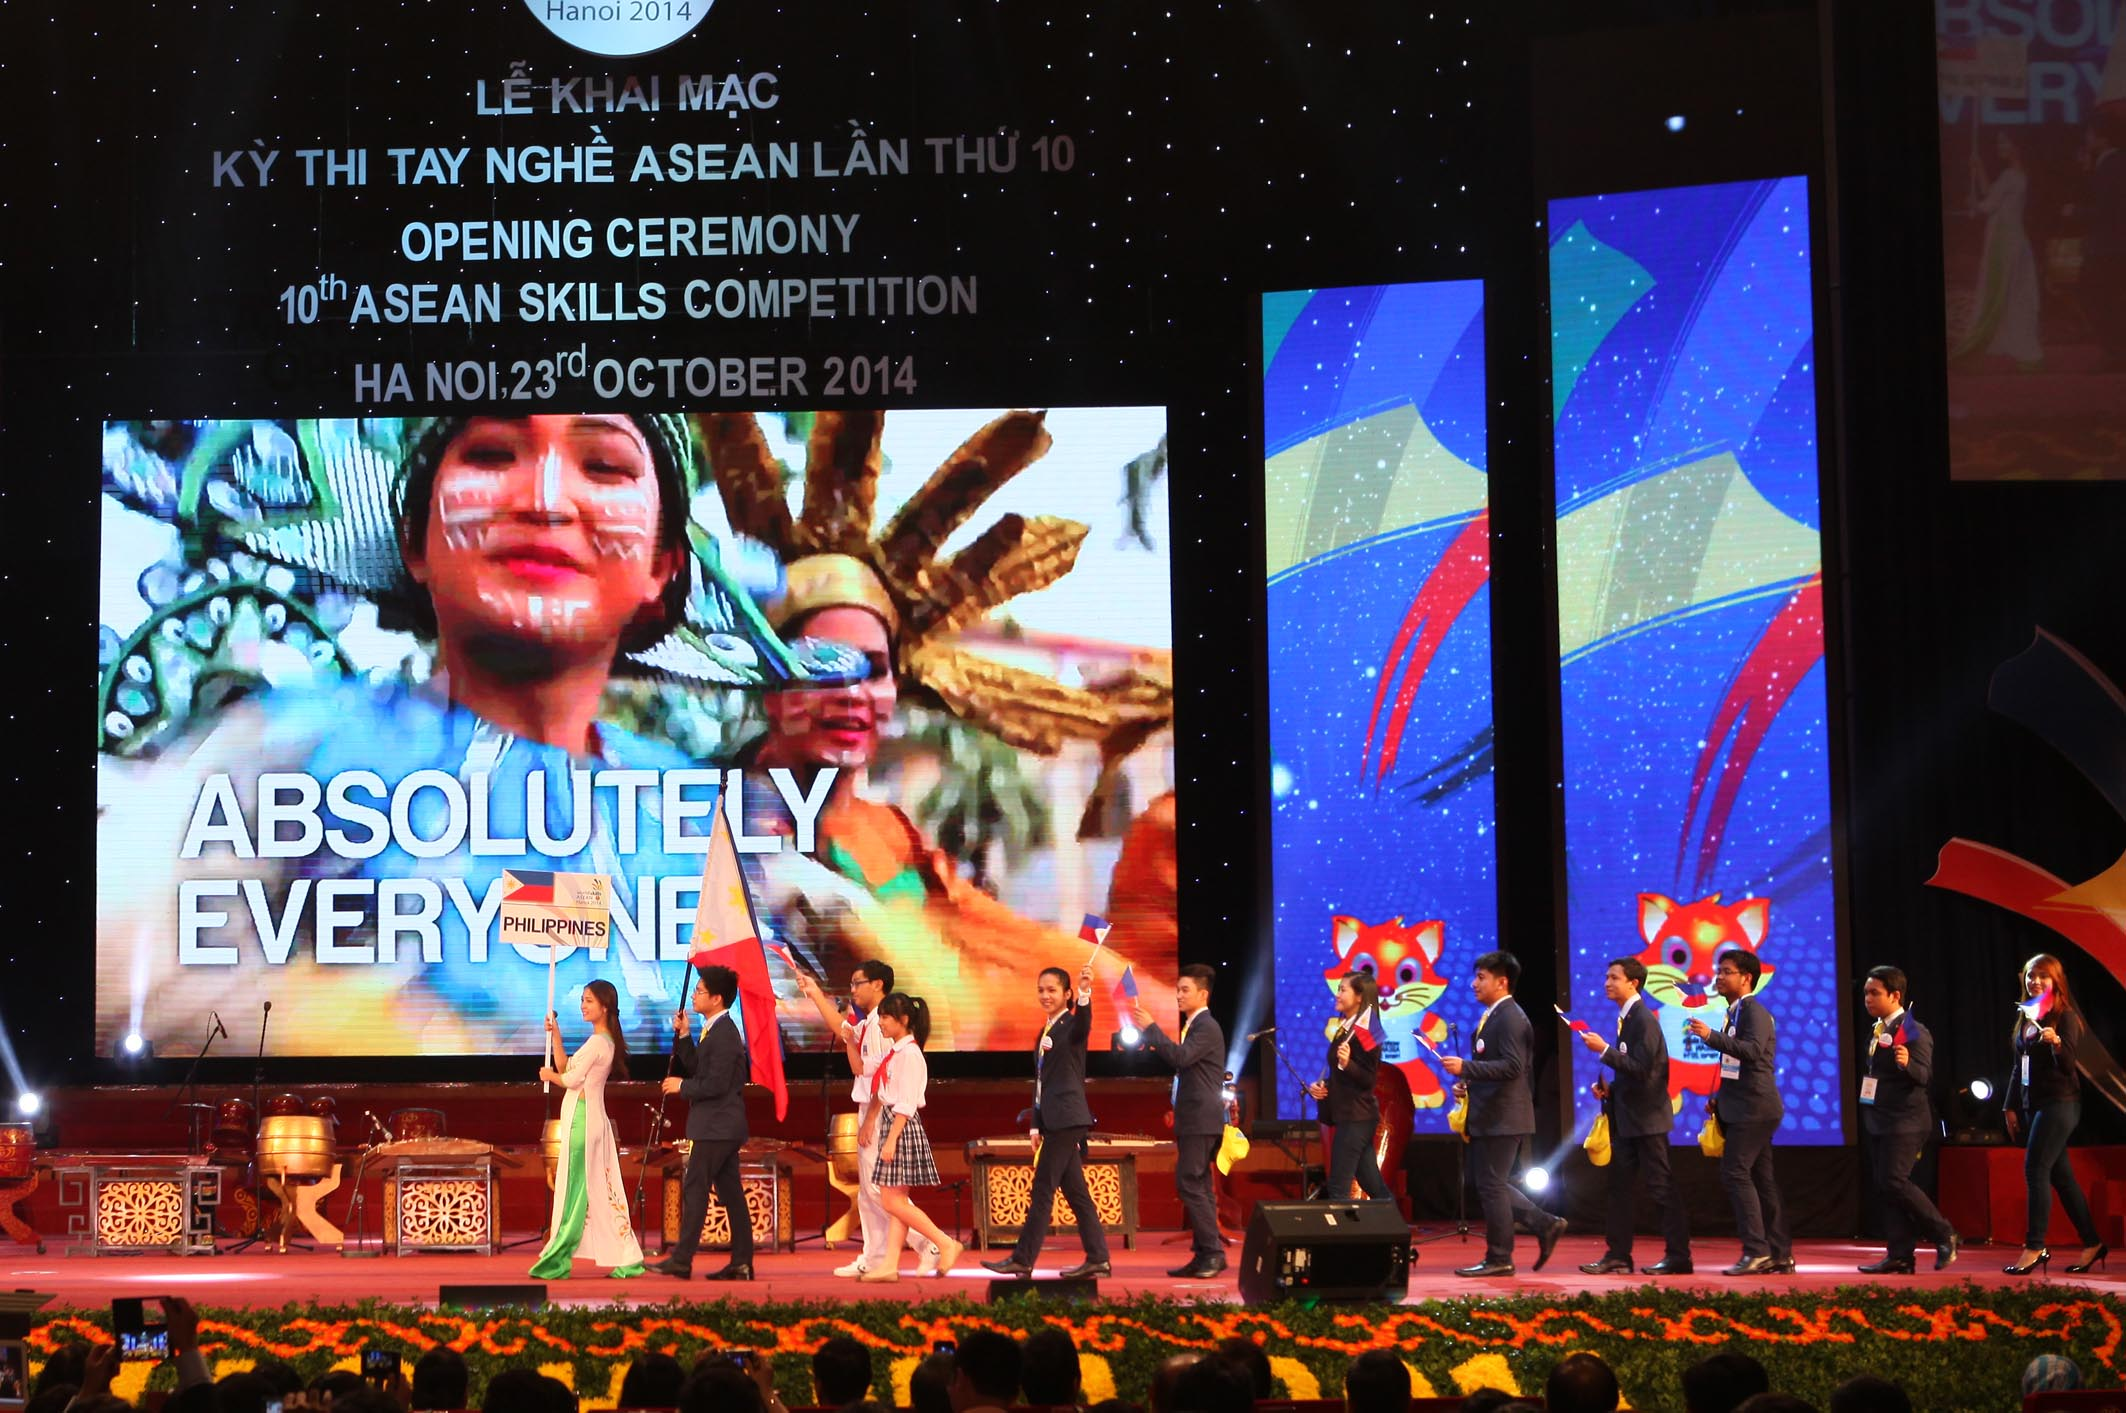 Philipines's delegation parades into stage